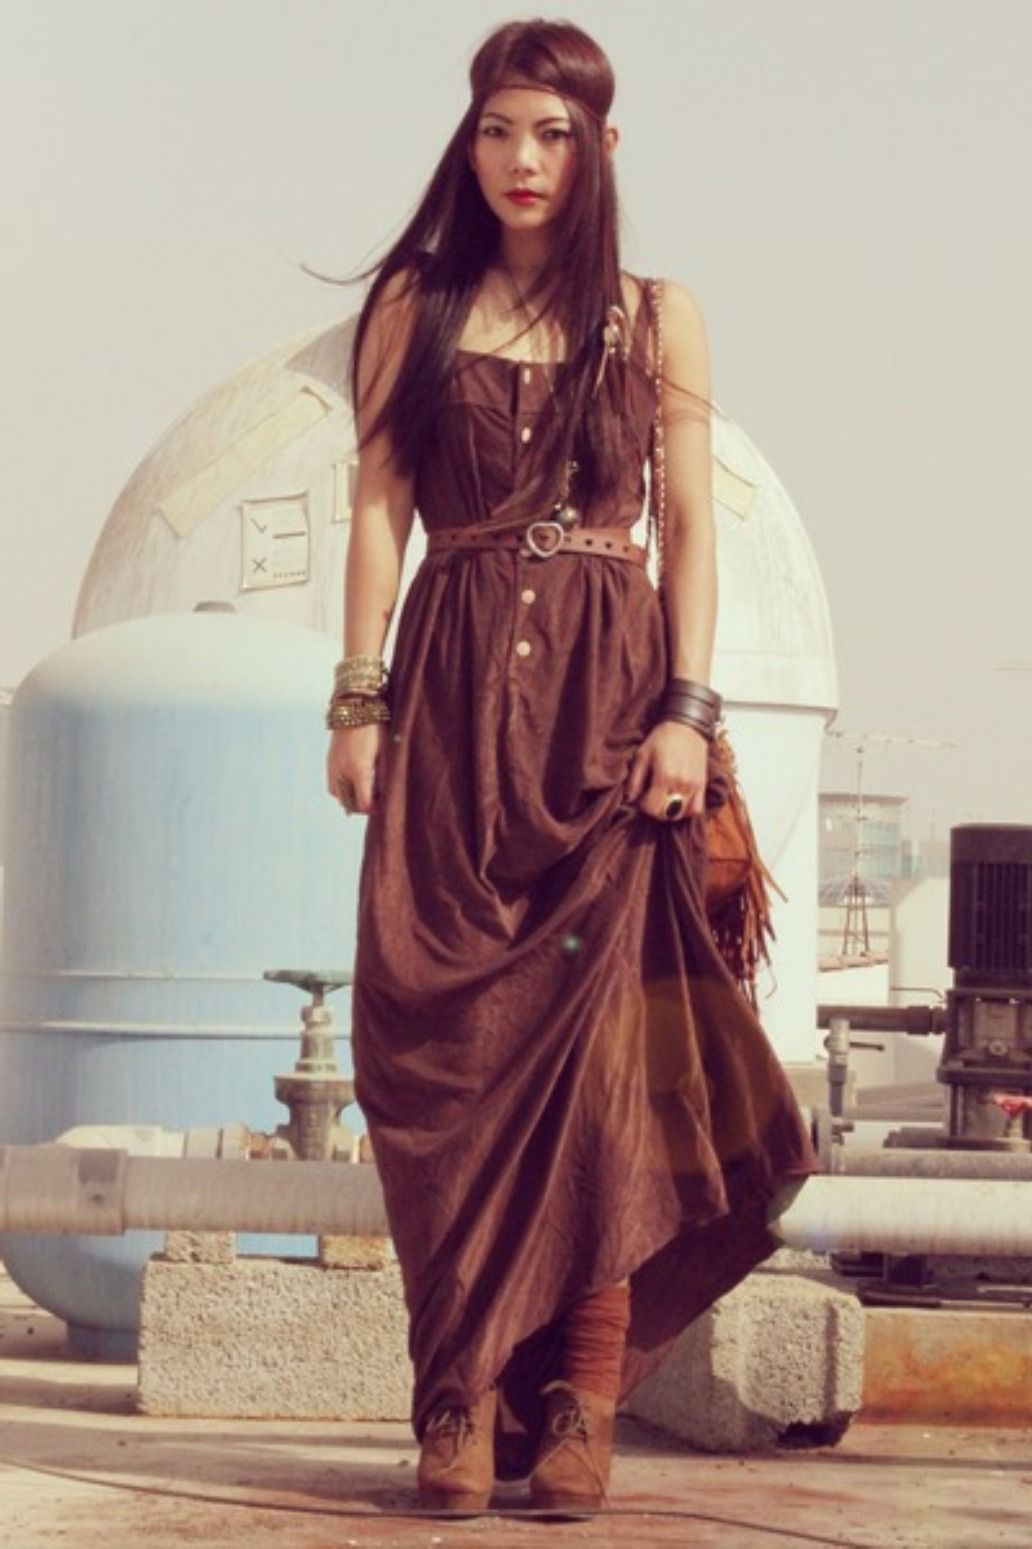 Image from http://sorayakusumawati.com/wp-content/uploads/2014/08/Long-Boho-Dresses-for-Women.jpg.